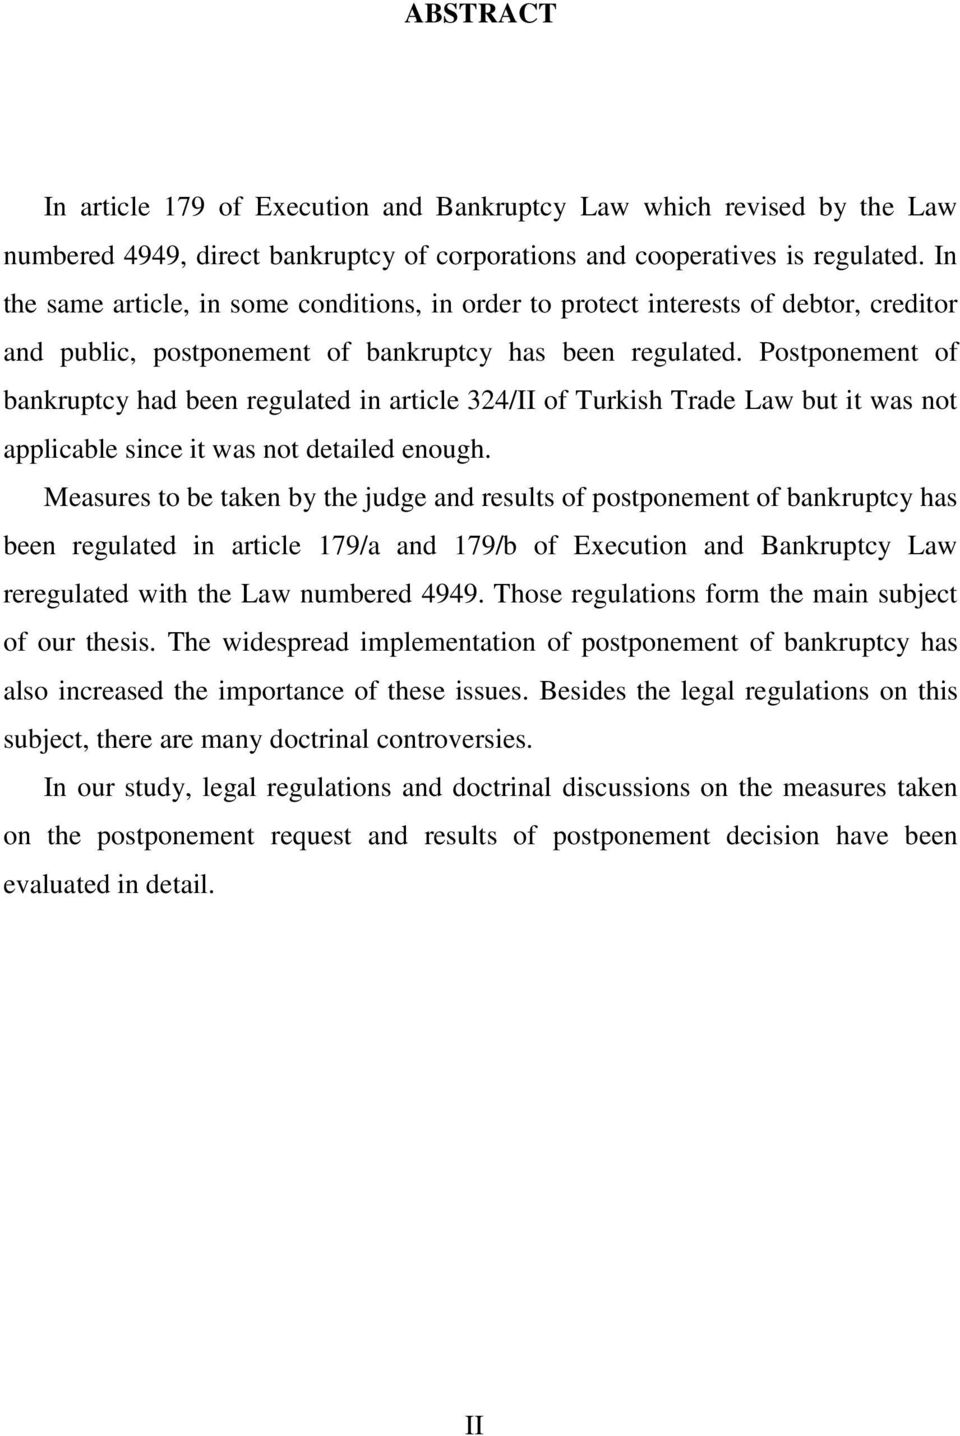 Postponement of bankruptcy had been regulated in article 324/II of Turkish Trade Law but it was not applicable since it was not detailed enough.